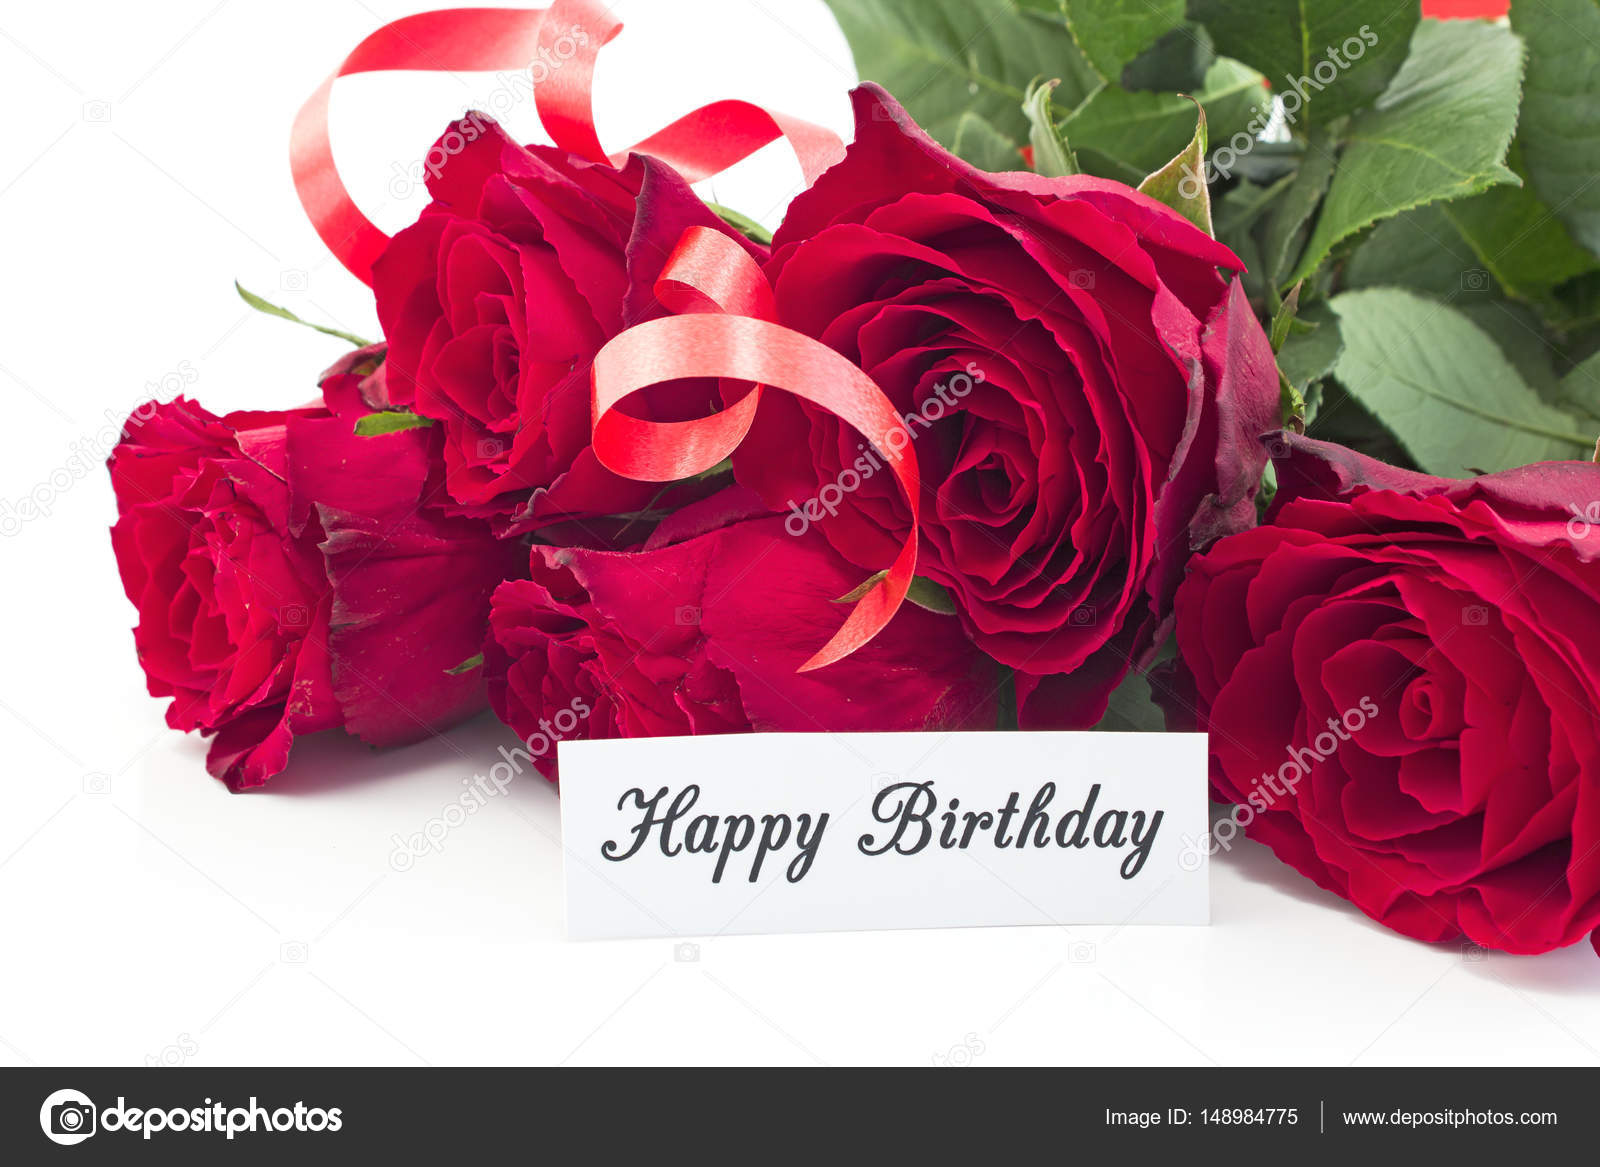 Happy birthday card with bouquet of red roses stock photo happy birthday card with bouquet of red roses stock photo izmirmasajfo